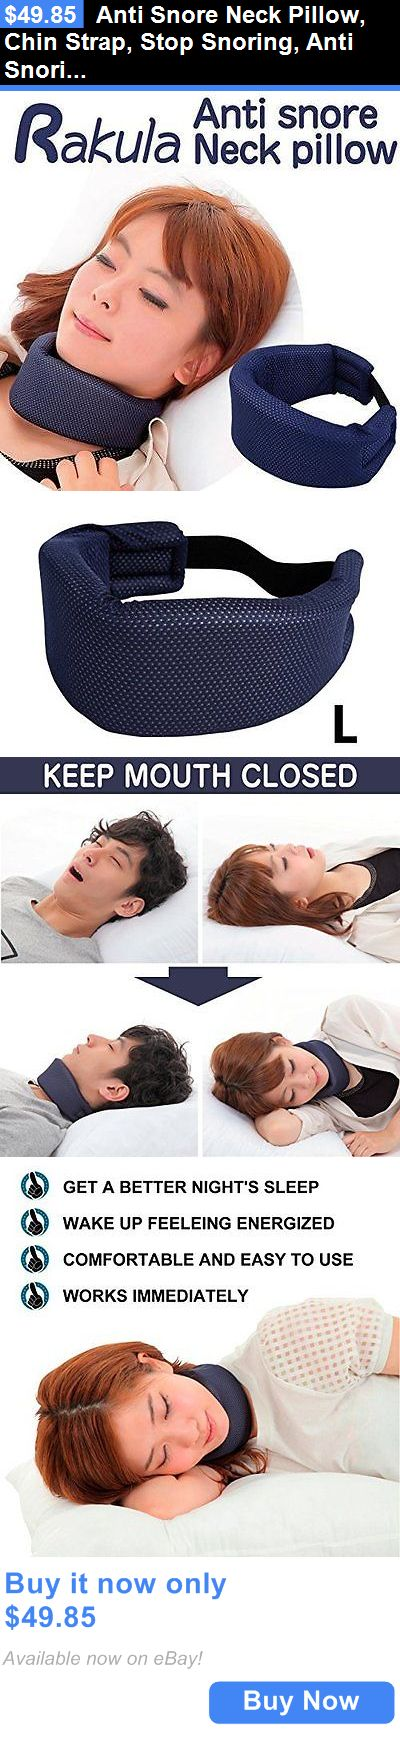 Anti Snore Neck Pillow, Chin Strap